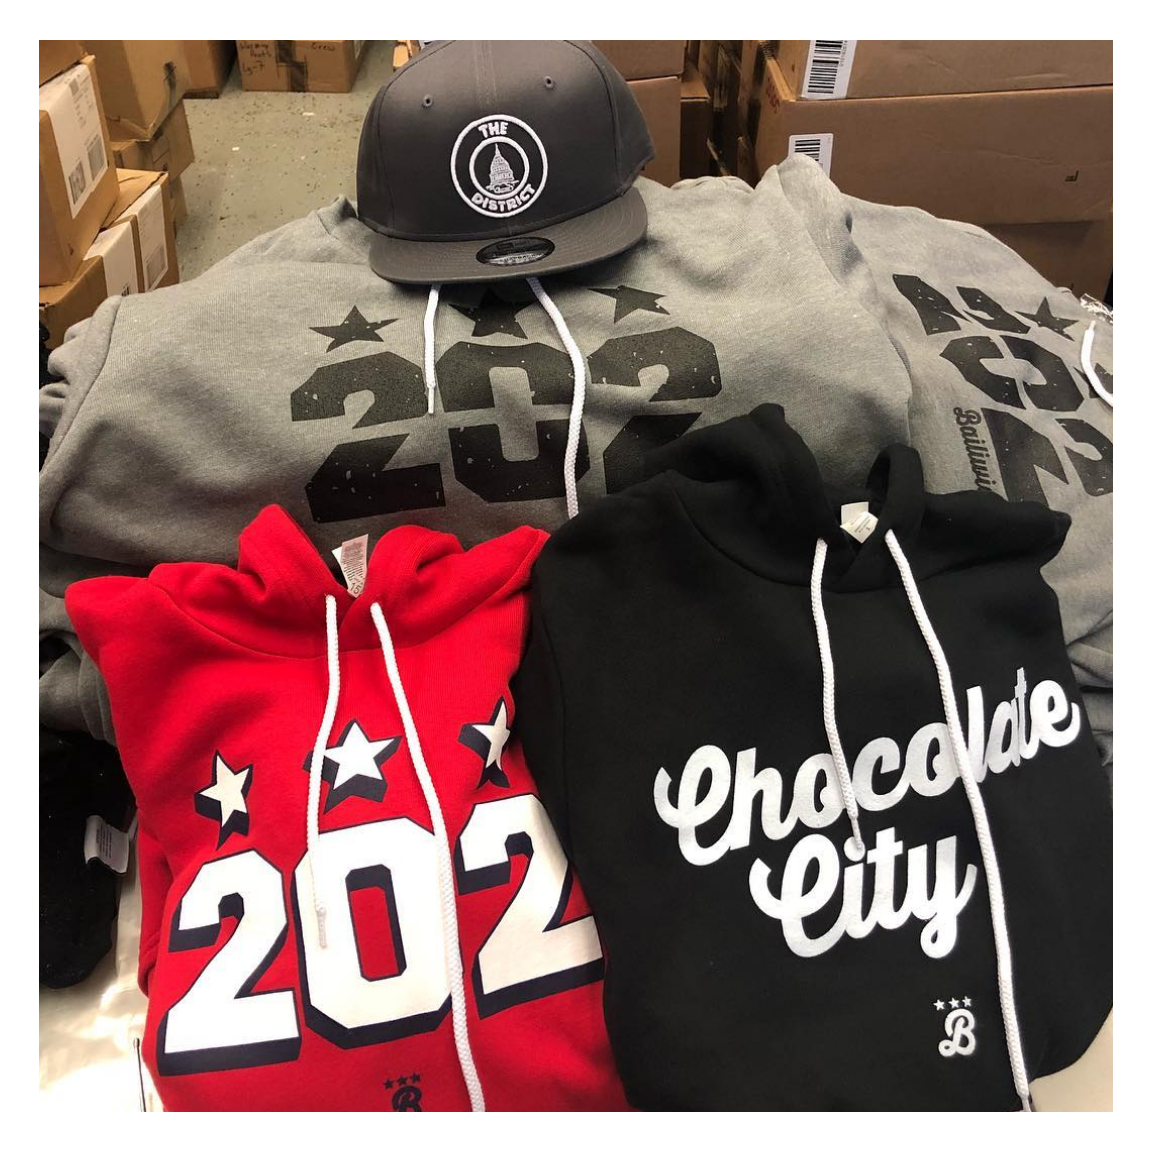 Bailiwick Clothing  - 202 Sweatshirt - Show off your DC pride with this cool and local line of sweatshirts and tees.